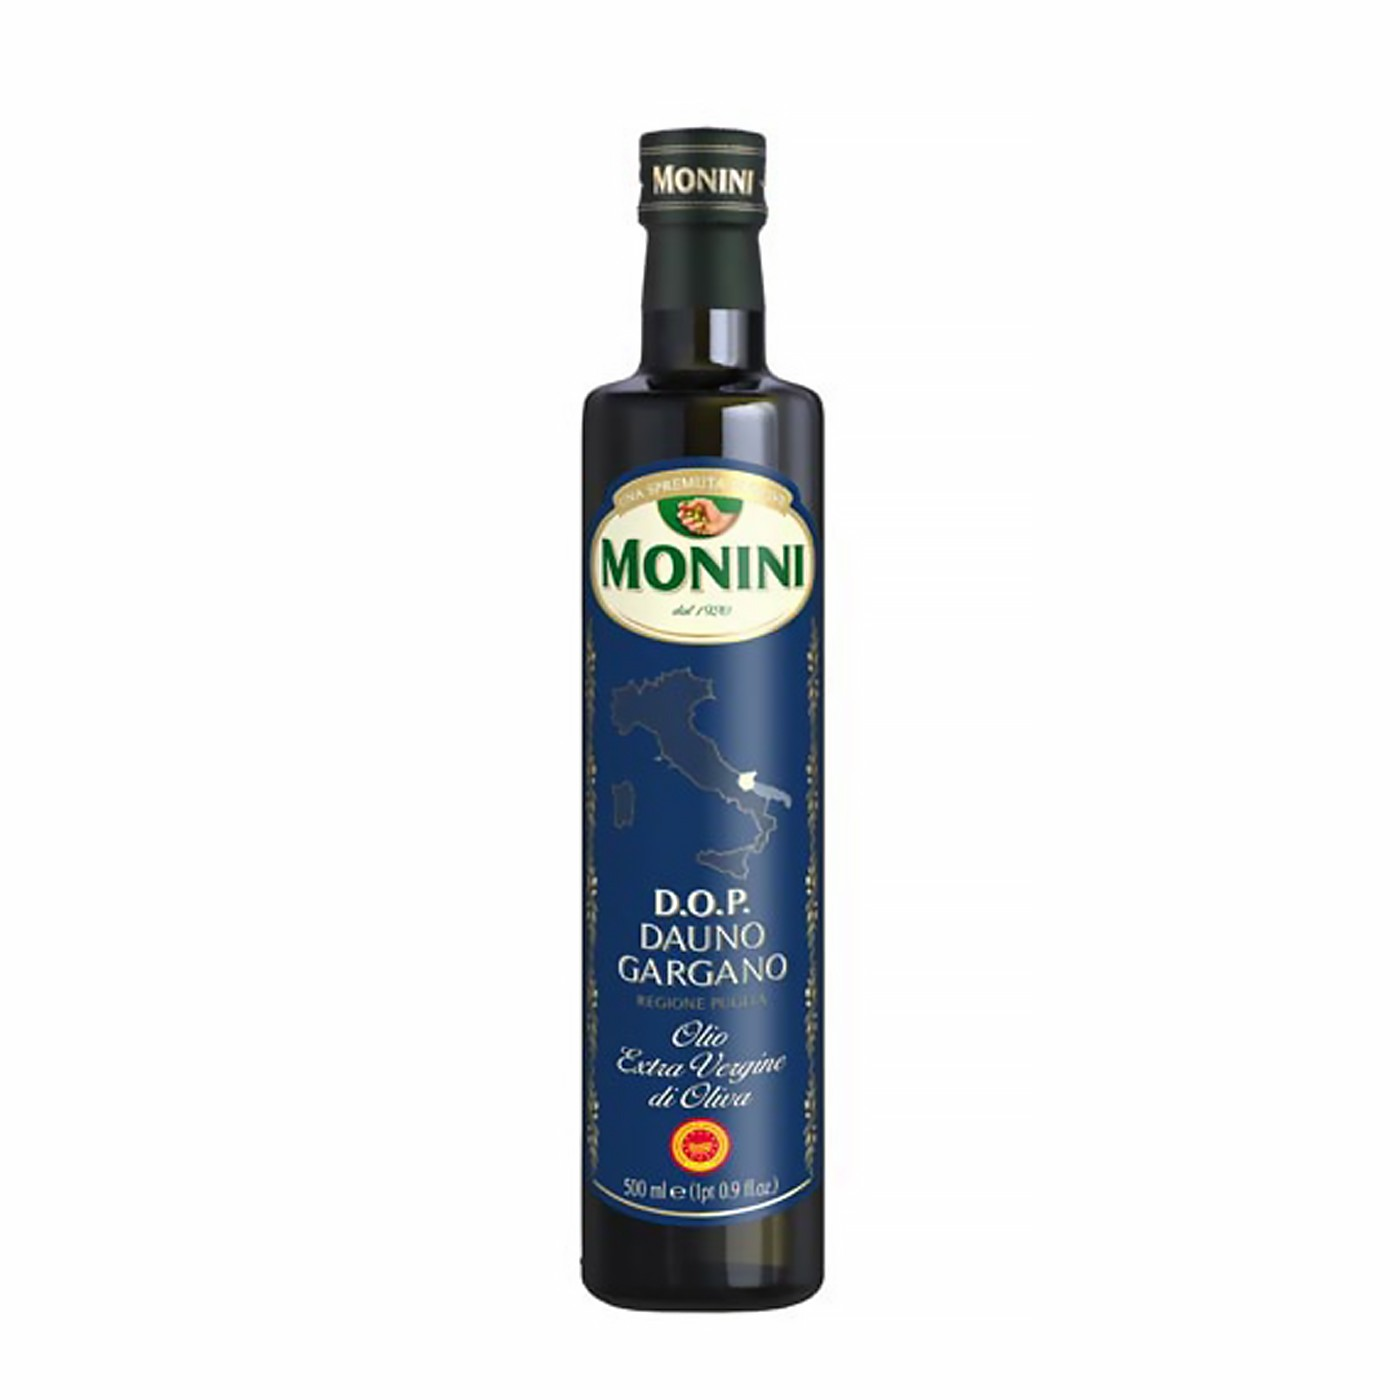 Dauno Extra Virgin Olive Oil DOP 16.9 oz